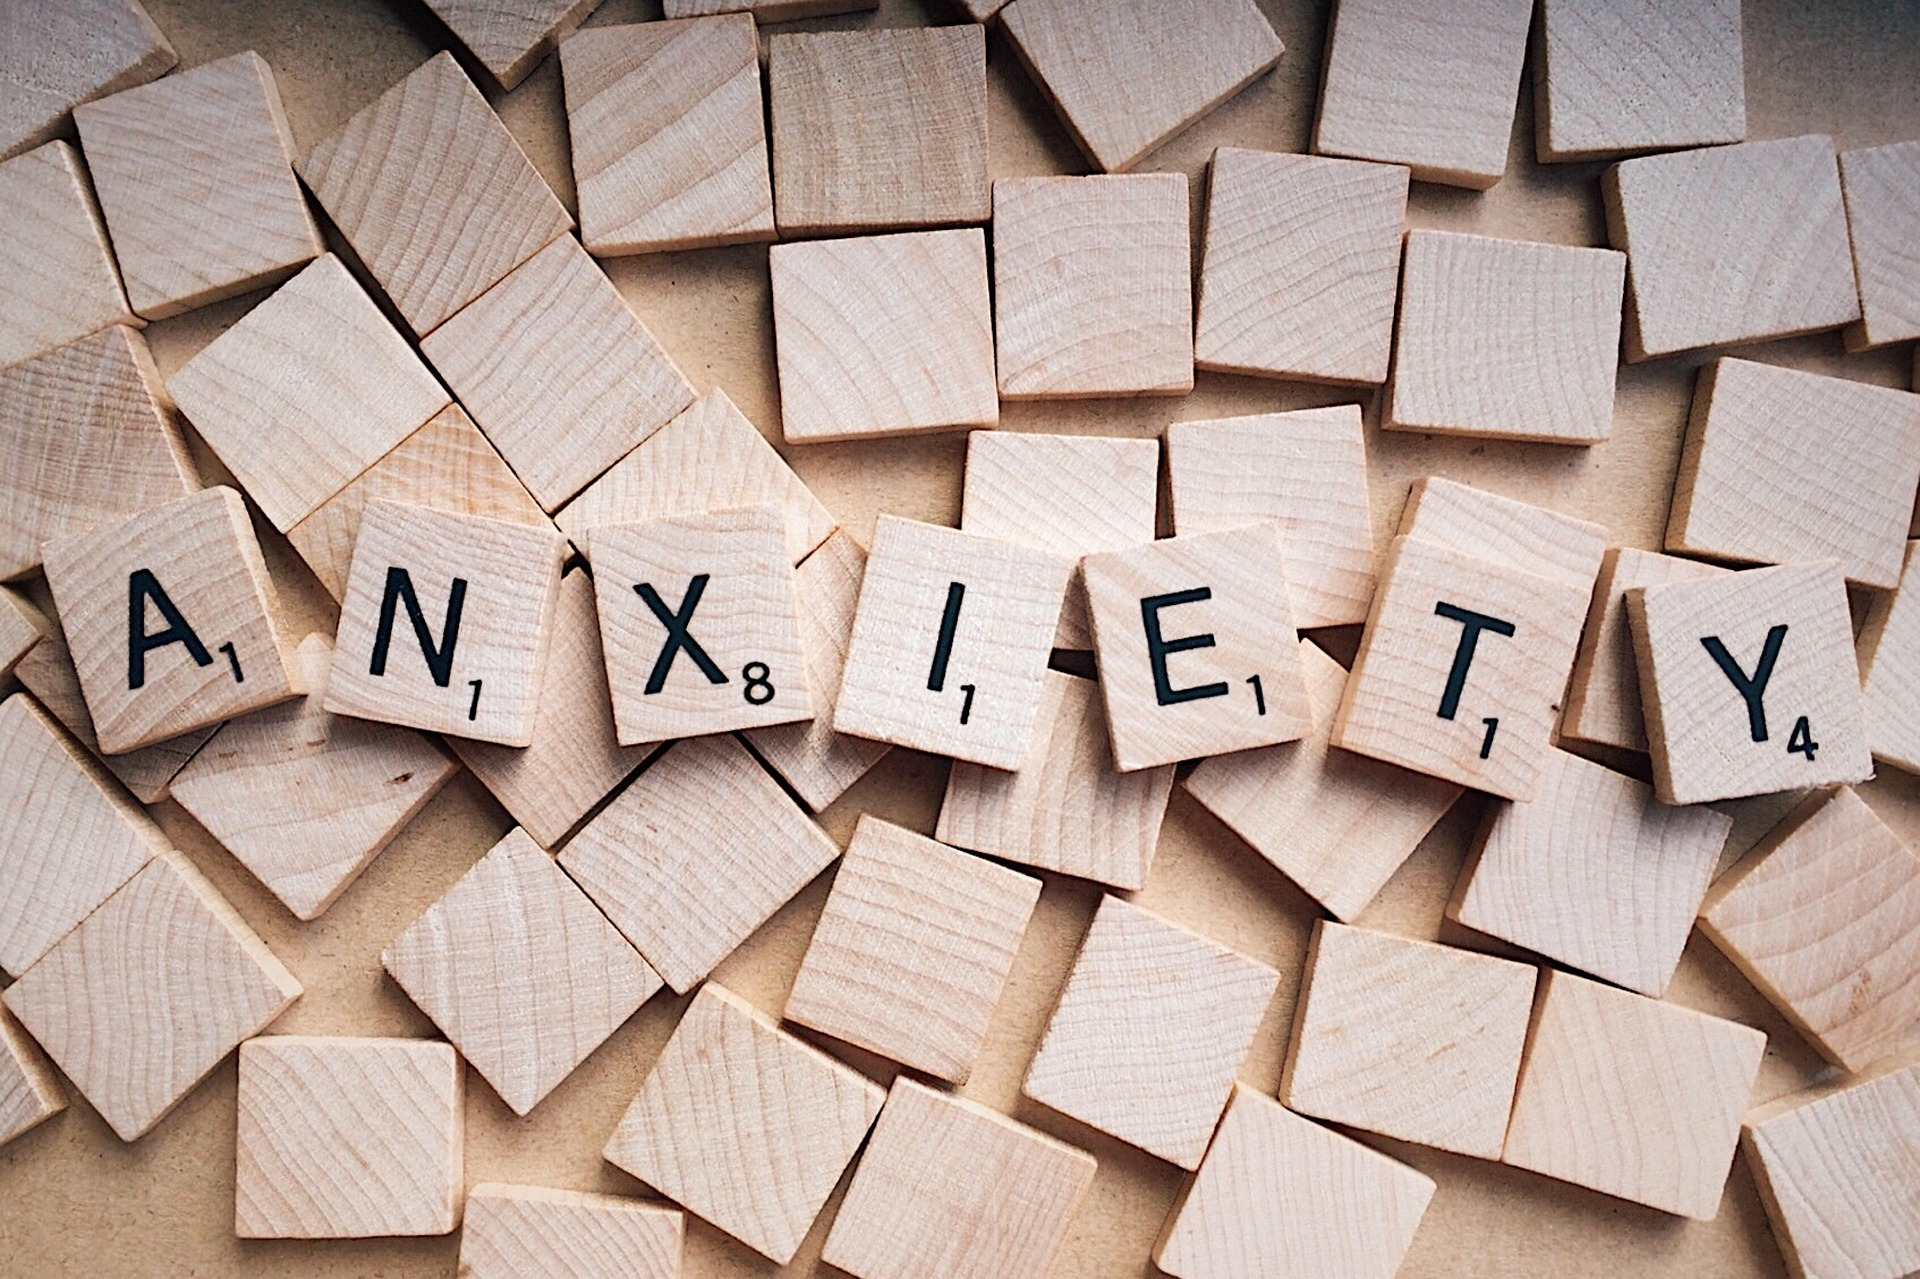 Learn day-to-day tips for managing feelings of anxiety. While everyone can experience anxiety, you don't have to live at the effect of it.